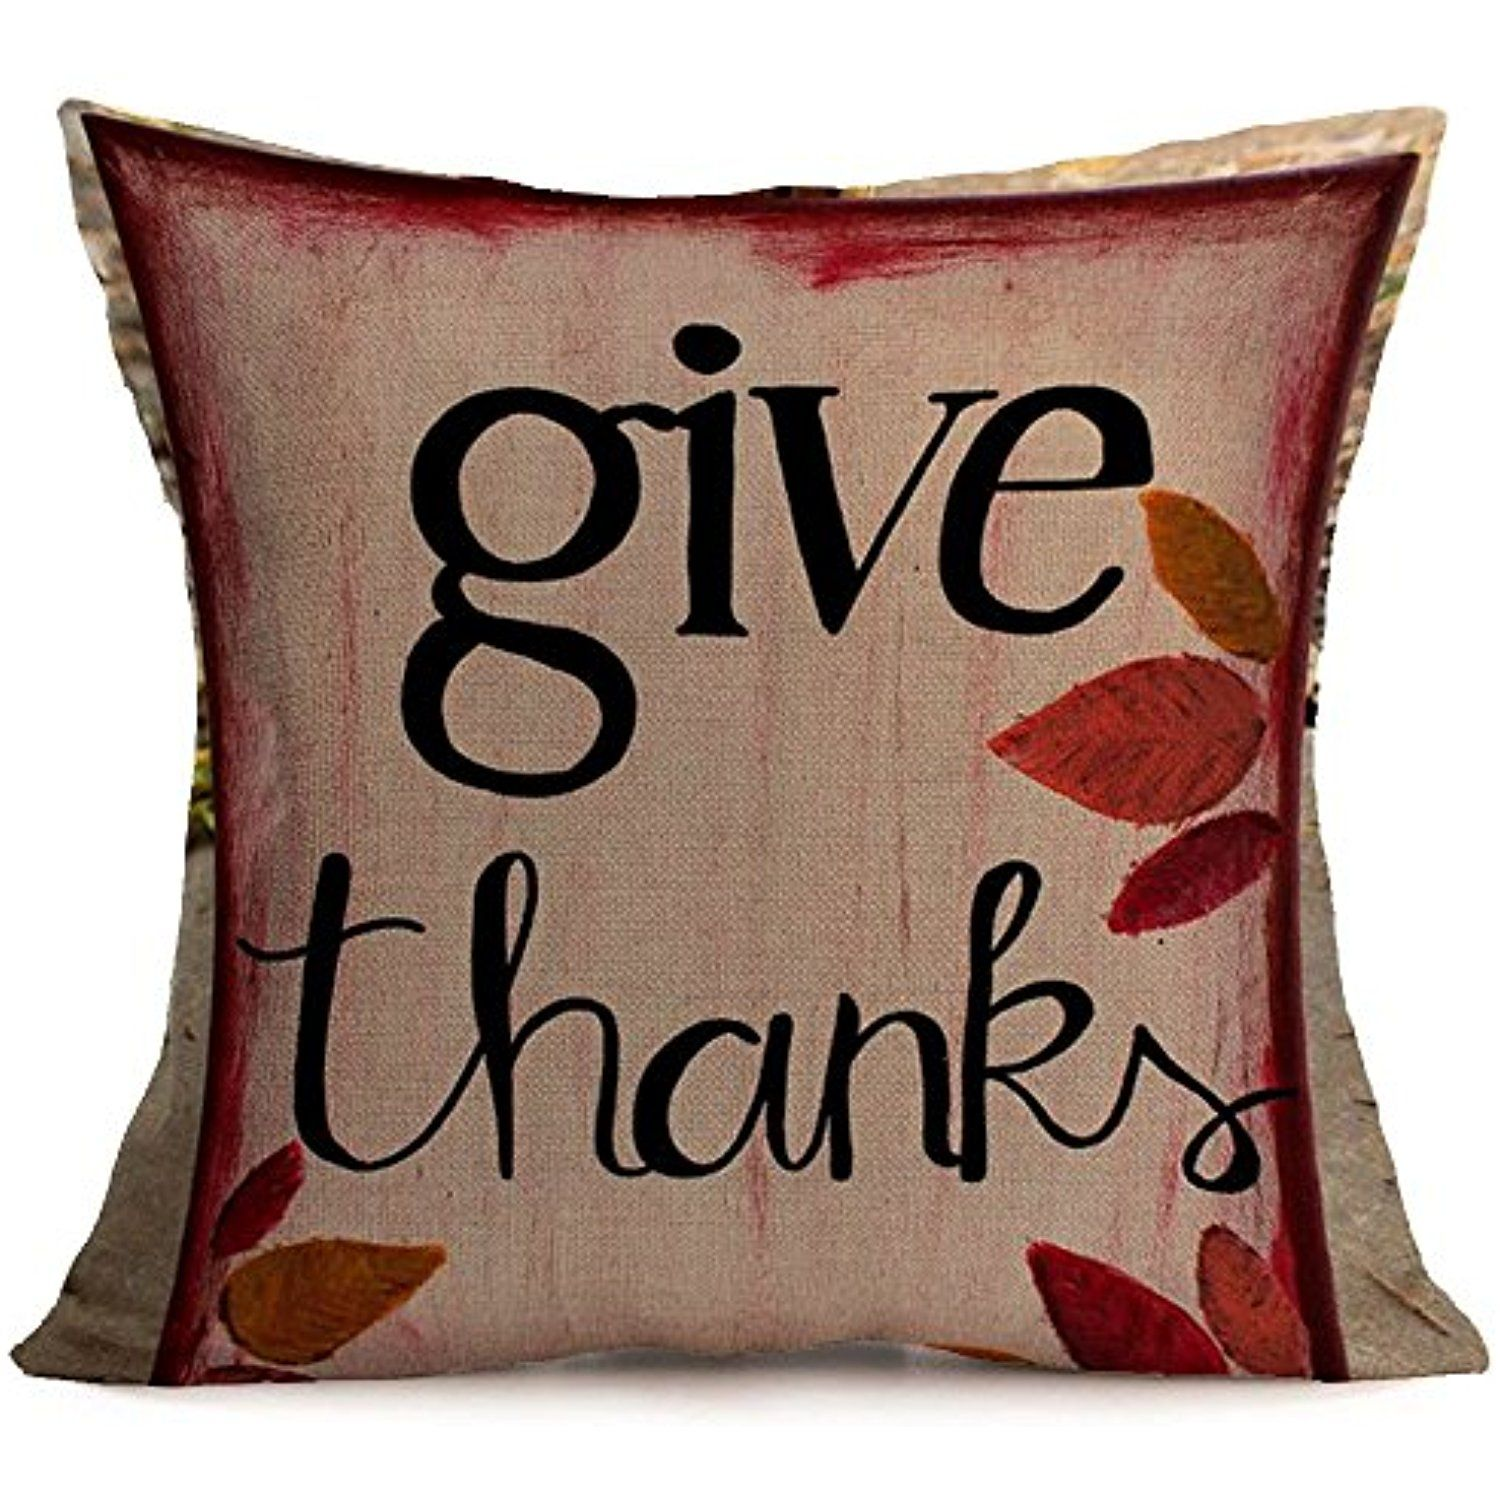 Bless pillow covers autumn thanksgiving christmas decorations